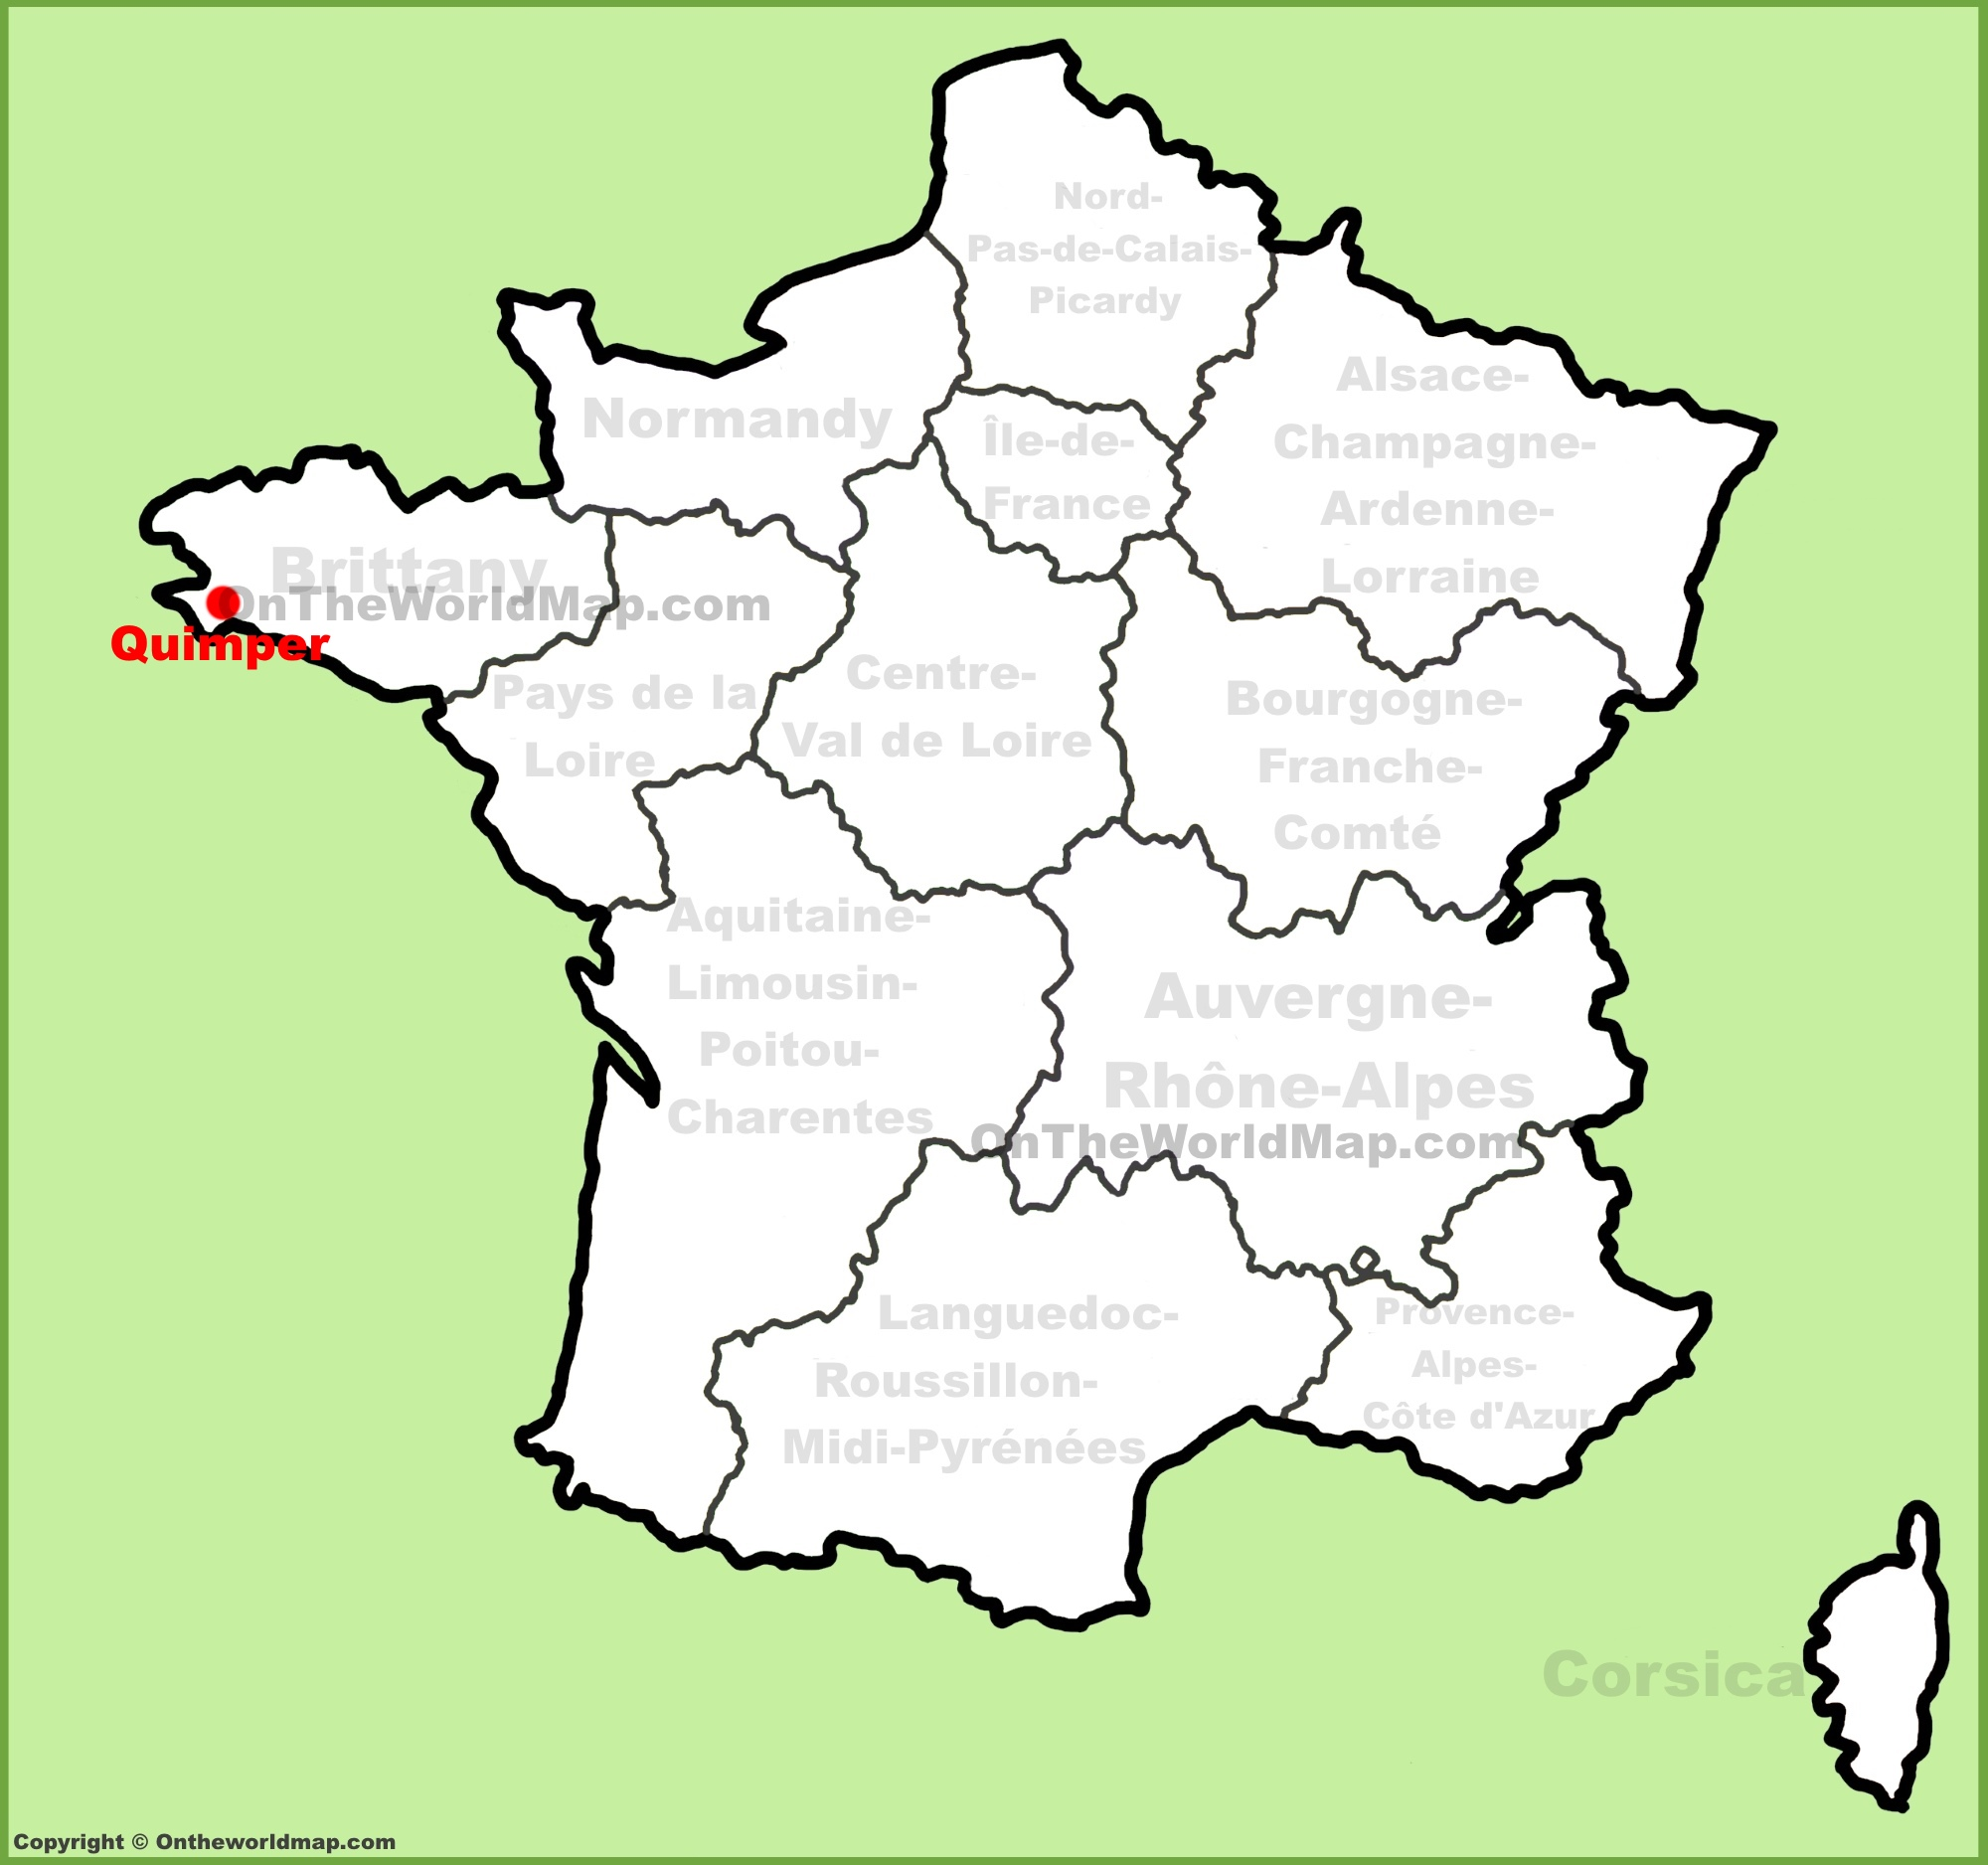 Quimper location on the france map quimper location on the france map gumiabroncs Choice Image